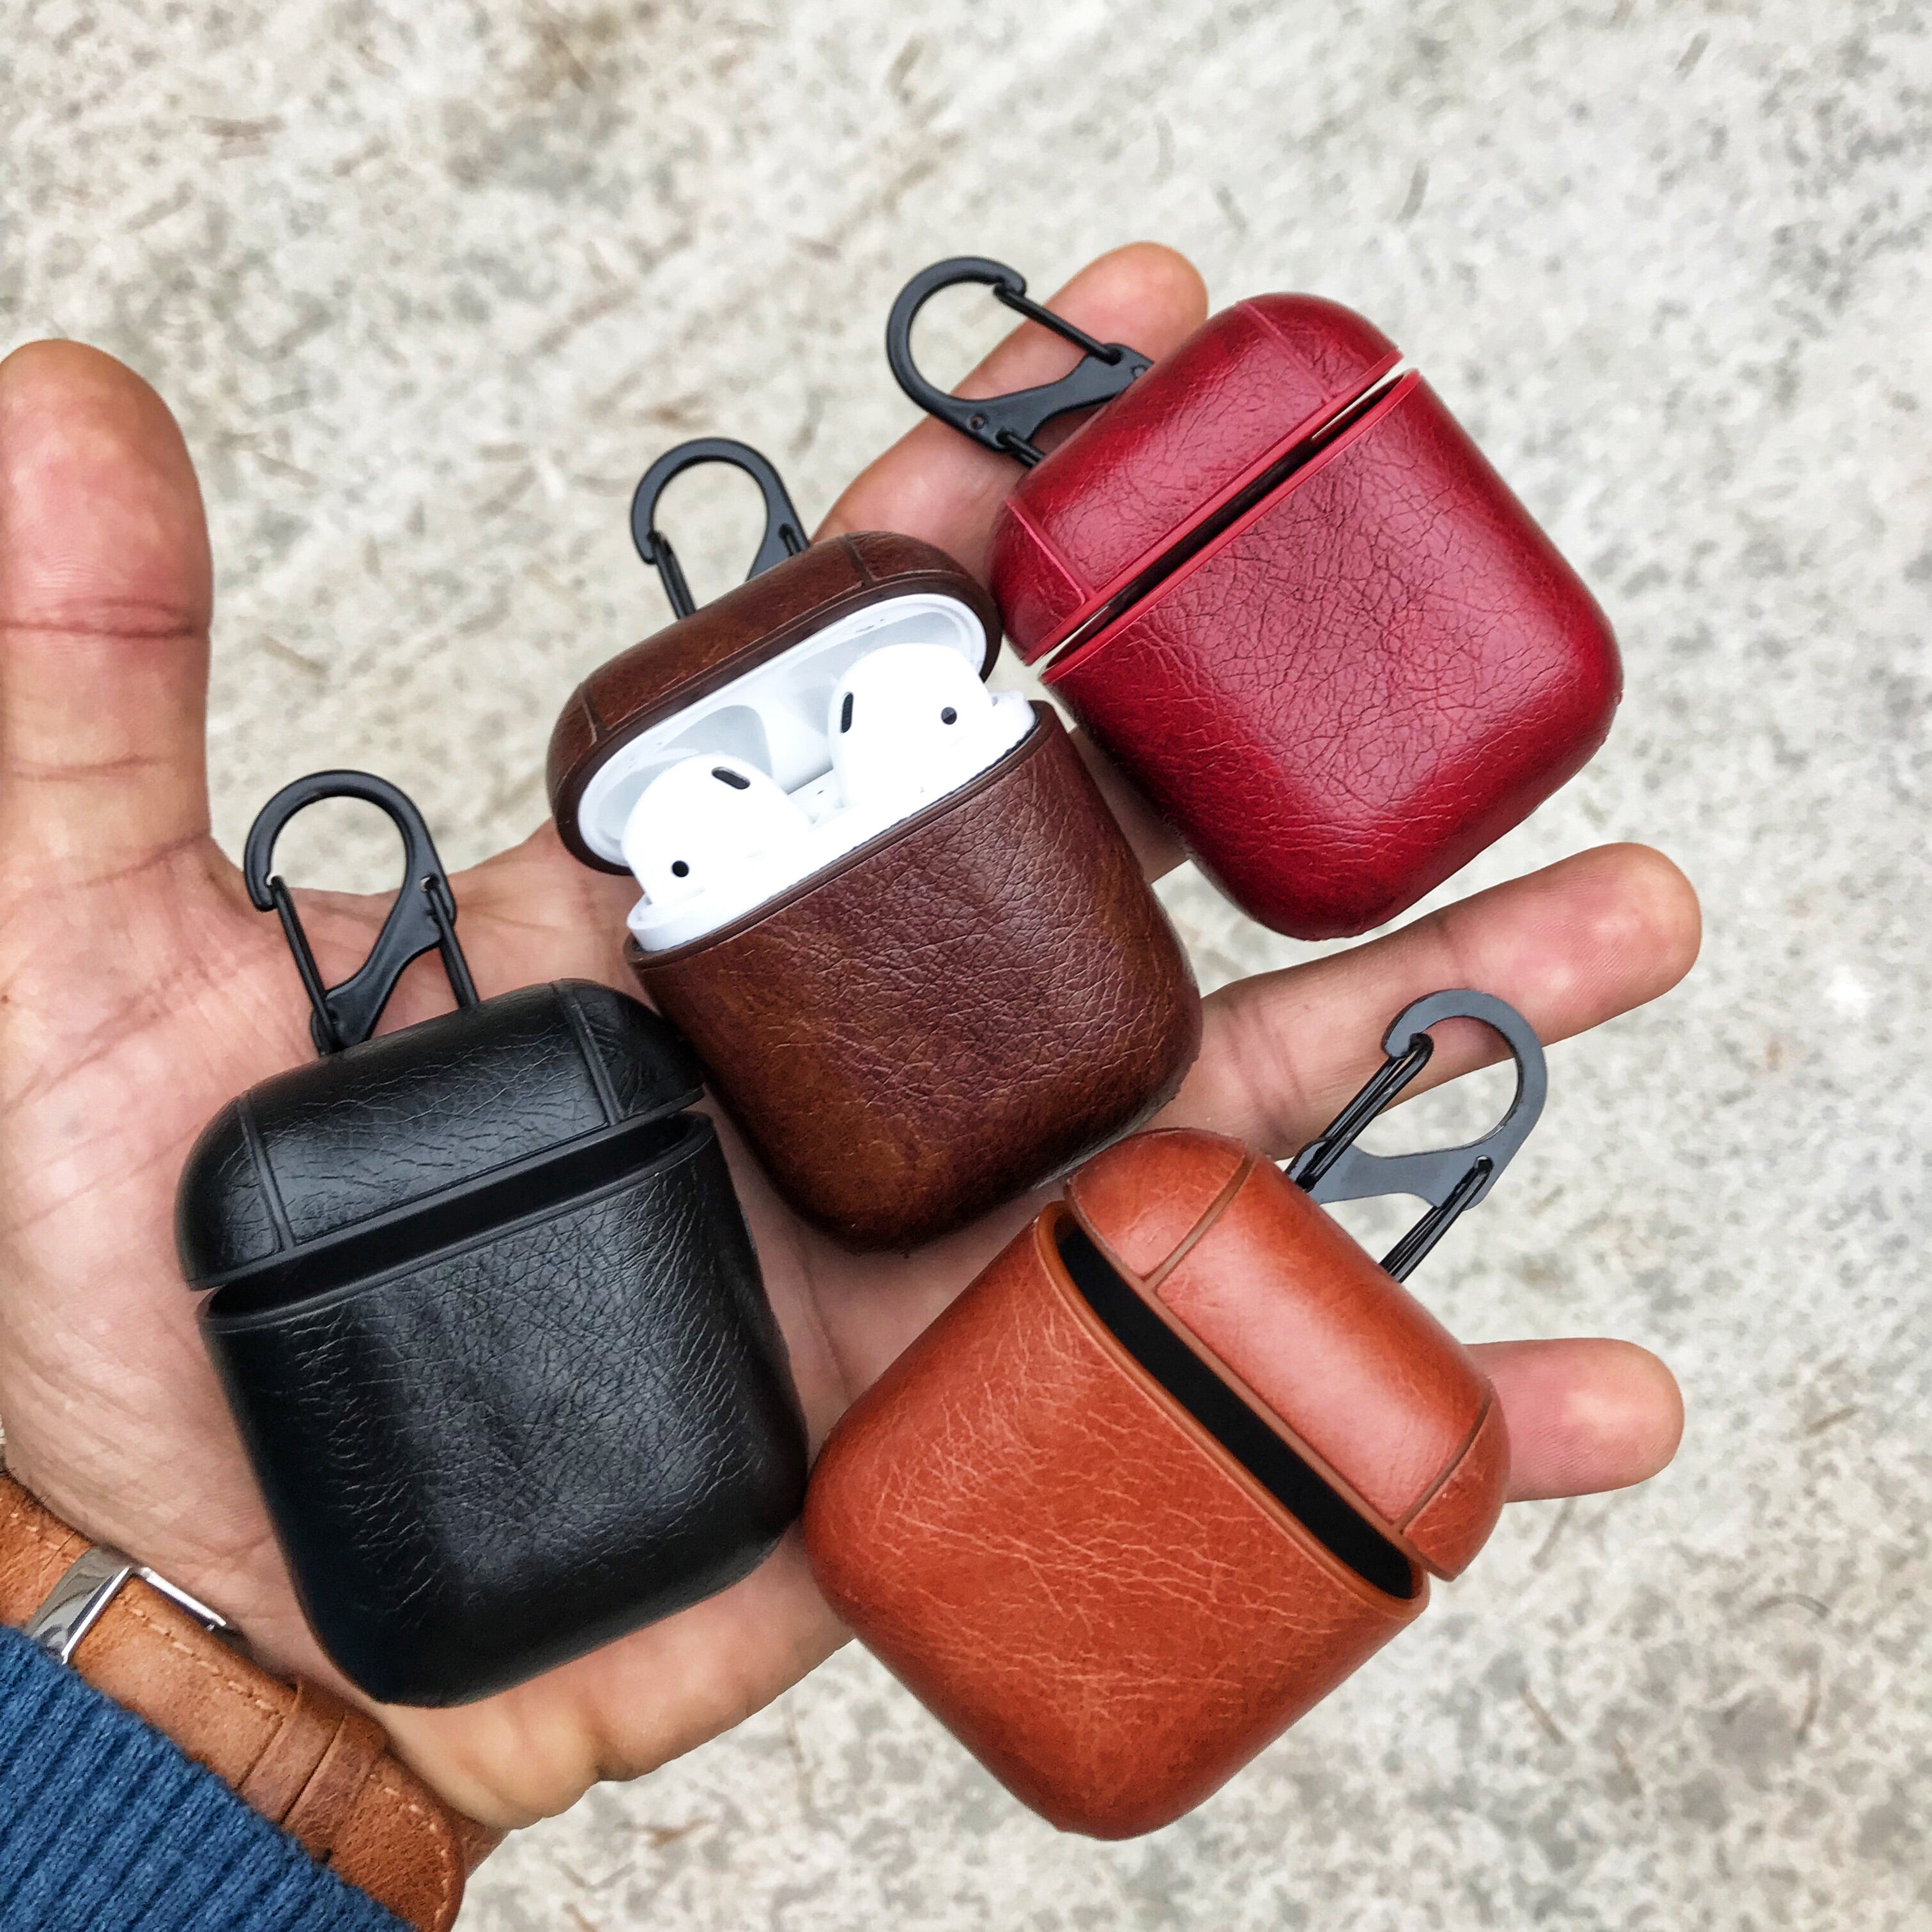 Classy Hook Series Leather Apple AirPods 1 & 2 Case With Button Access Custom Handmade Personalization | Brown Black Red Tan